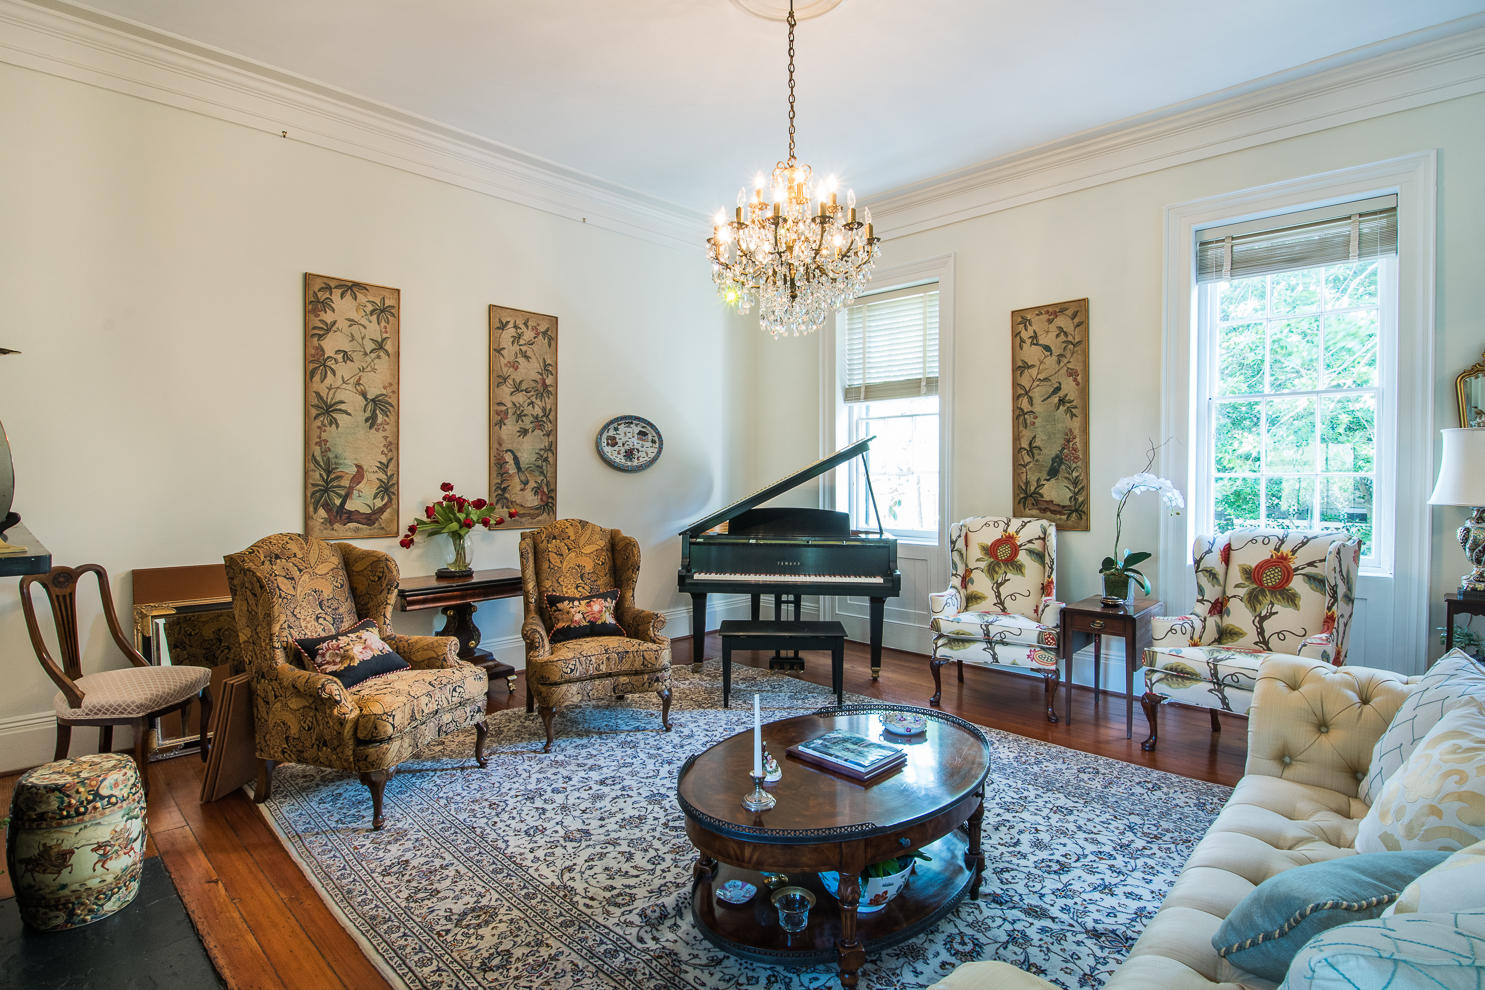 South of Broad Homes For Sale - 1 Prices, Charleston, SC - 11